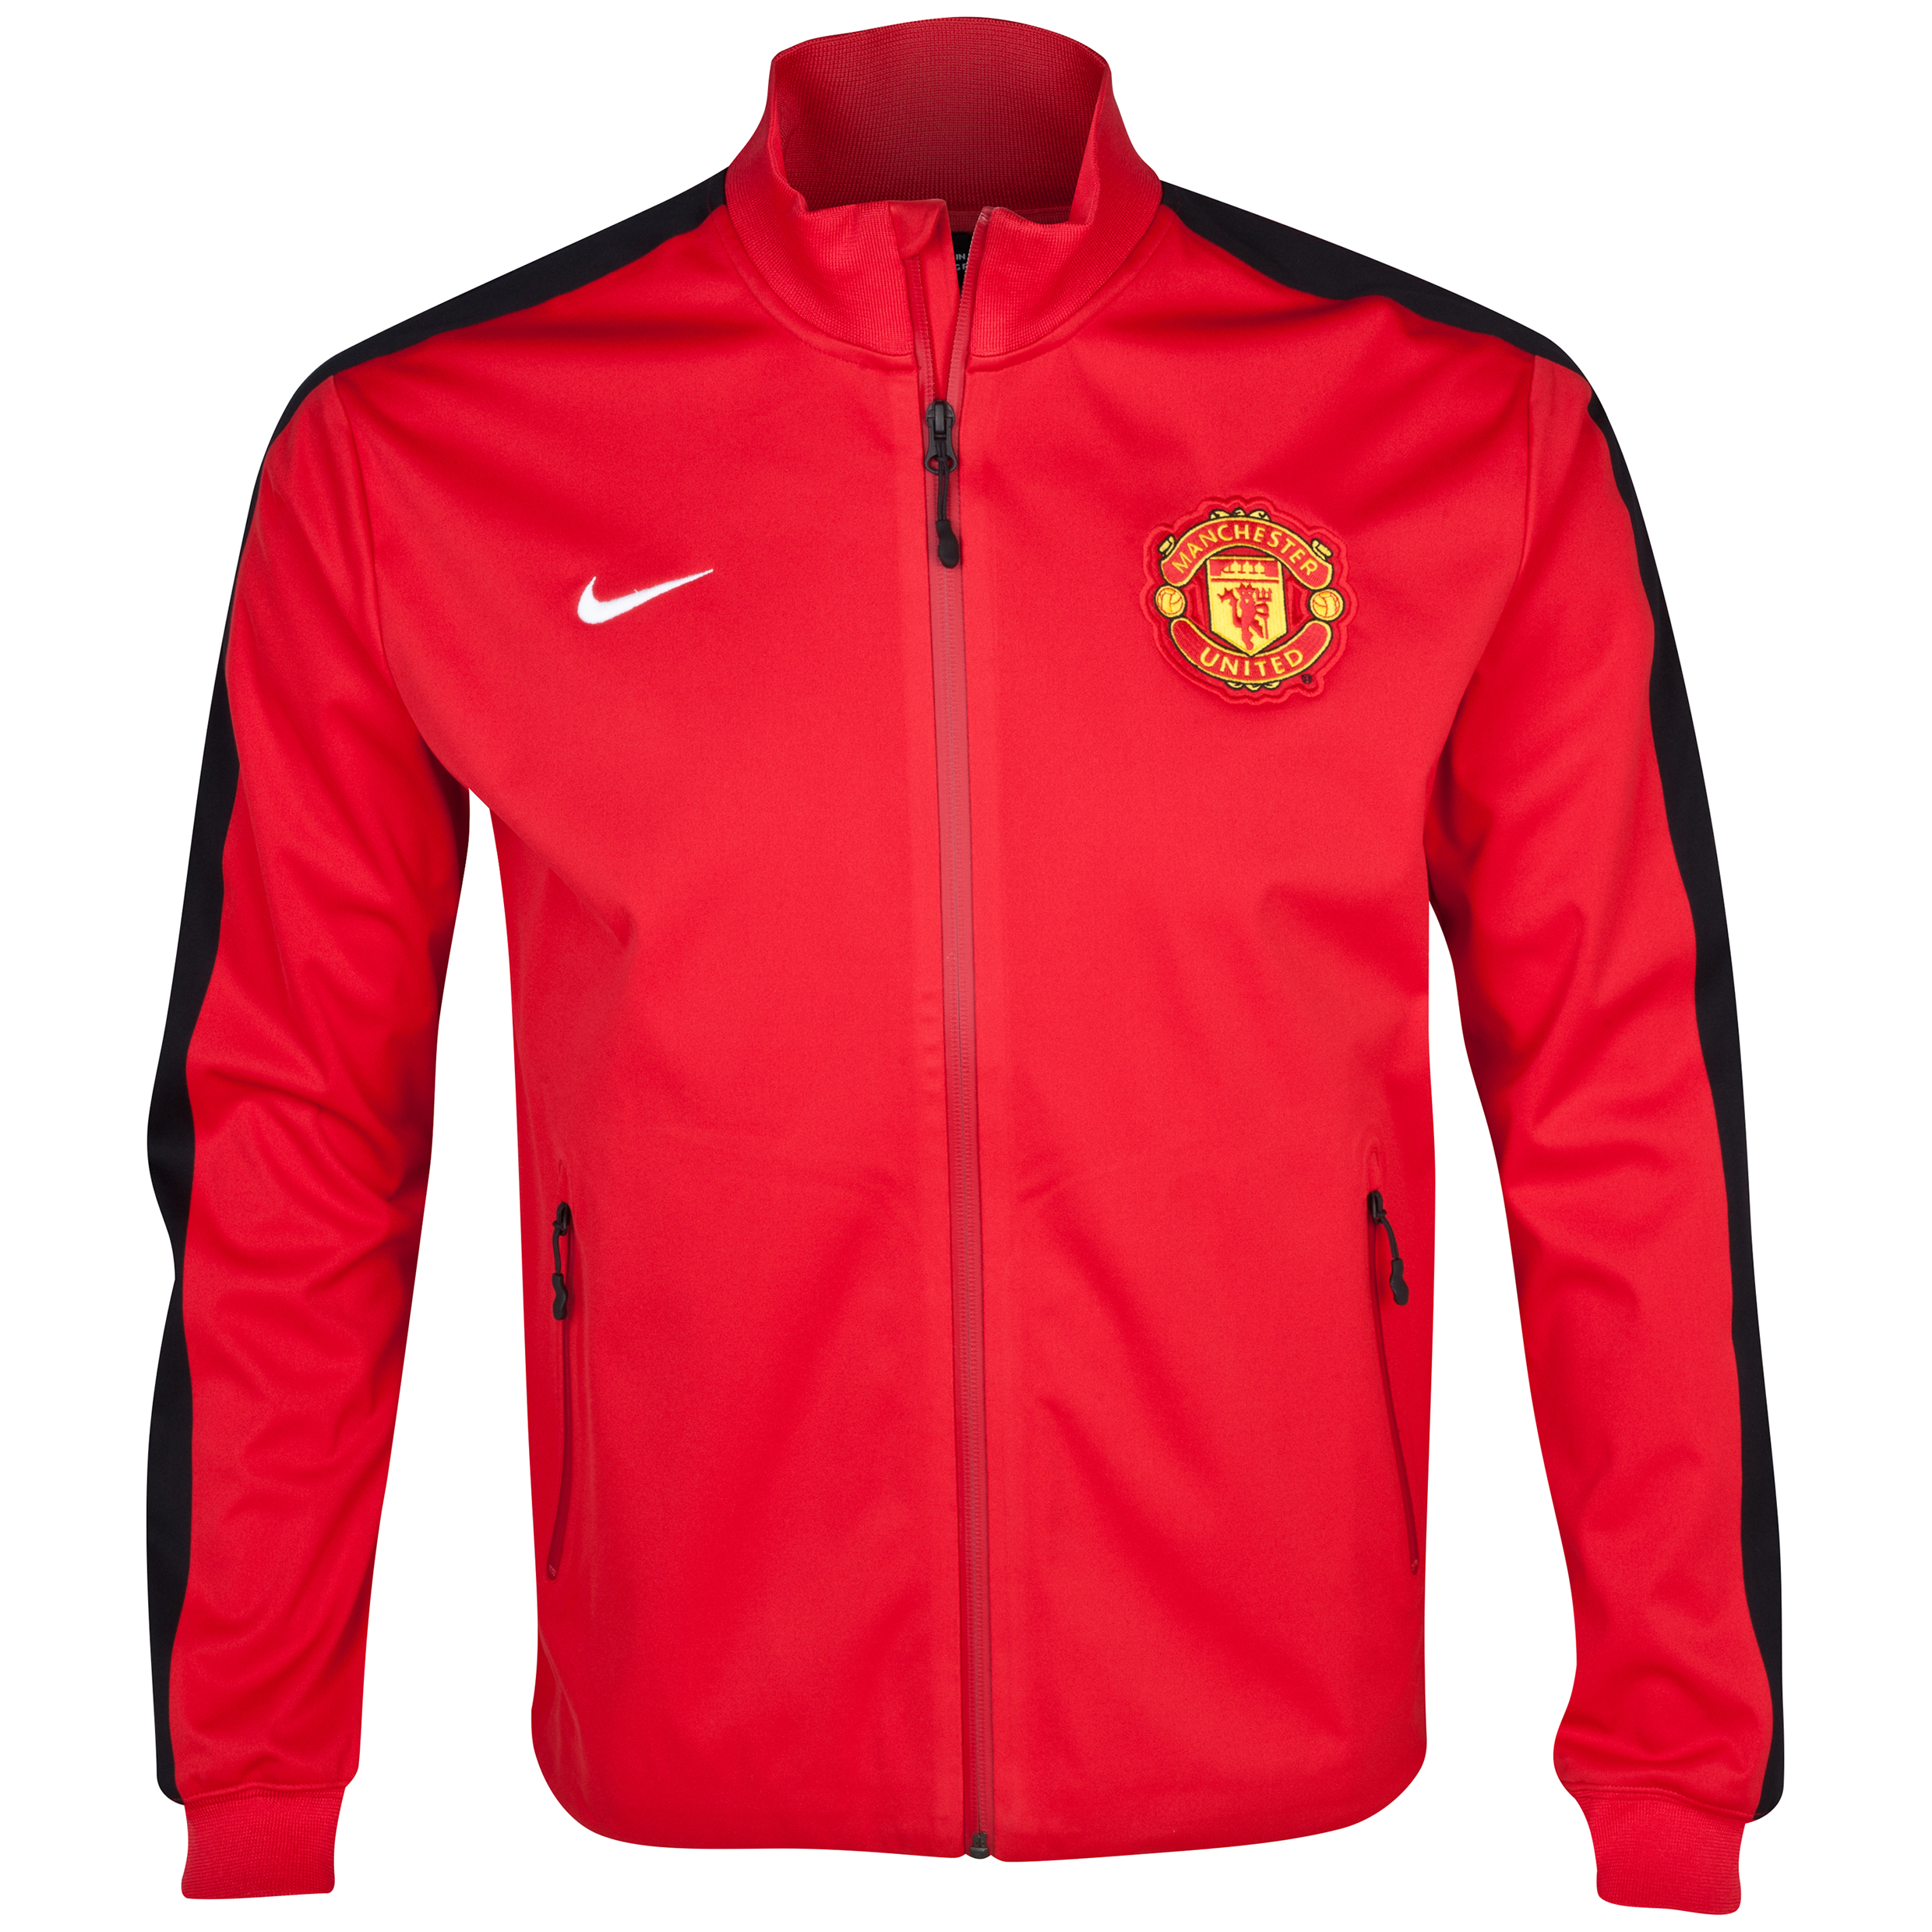 Manchester United Authentic UEFA Champions League N98 Jacket - Diablo Red/Black/White Red